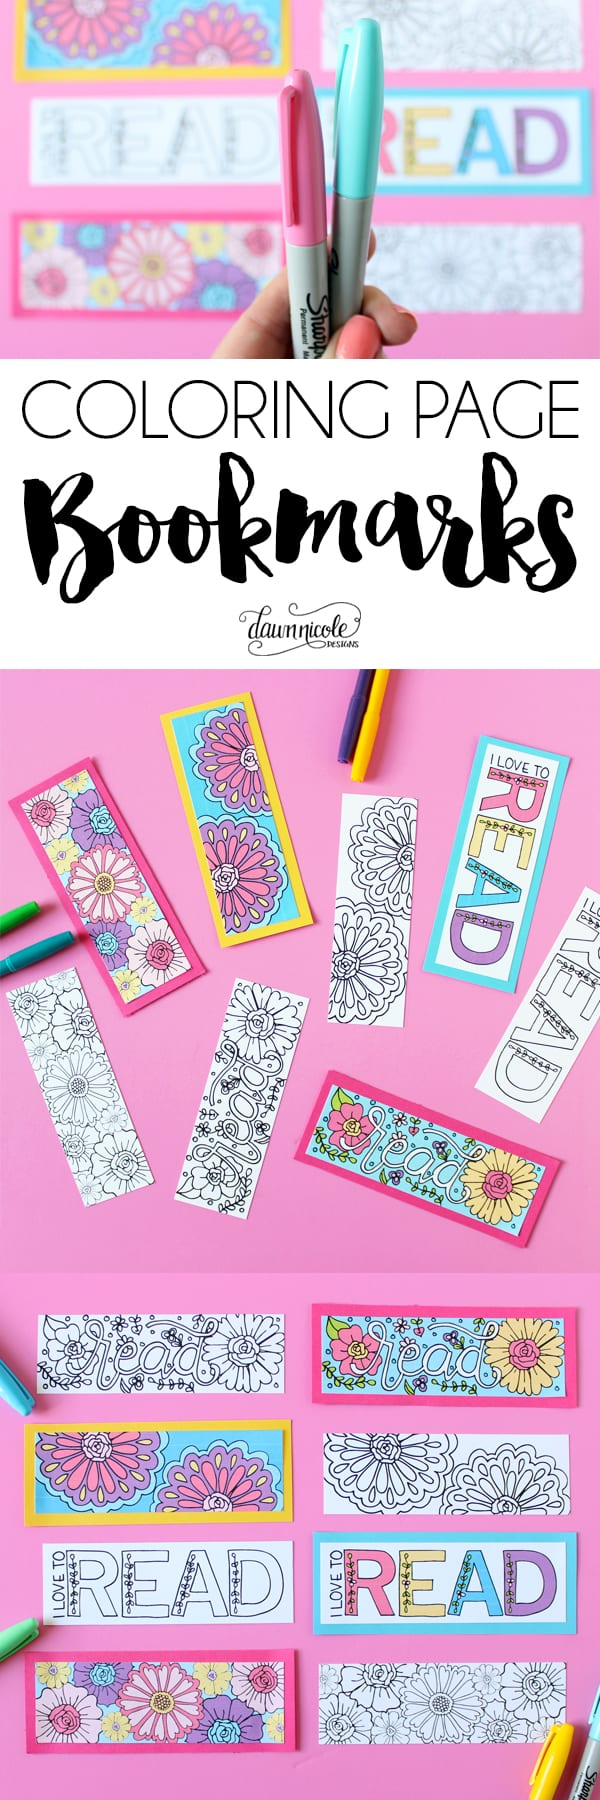 Summer Coloring Page Bookmarks | DawnNicoleDesigns.com